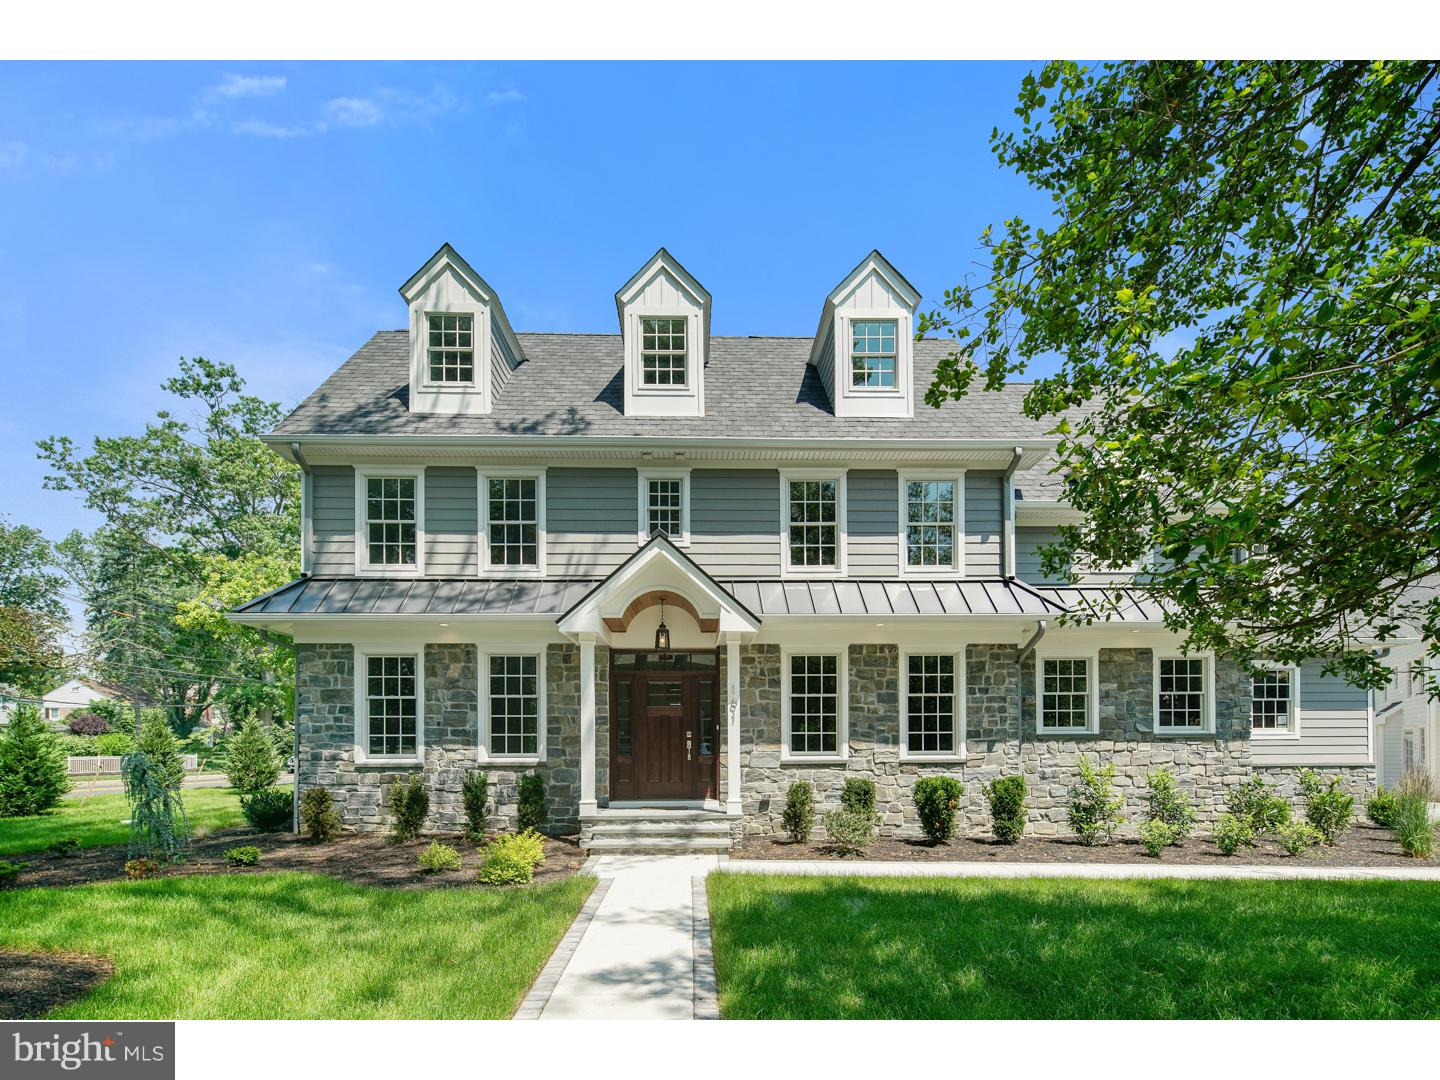 161 GILL ROAD, HADDONFIELD, NJ 08033